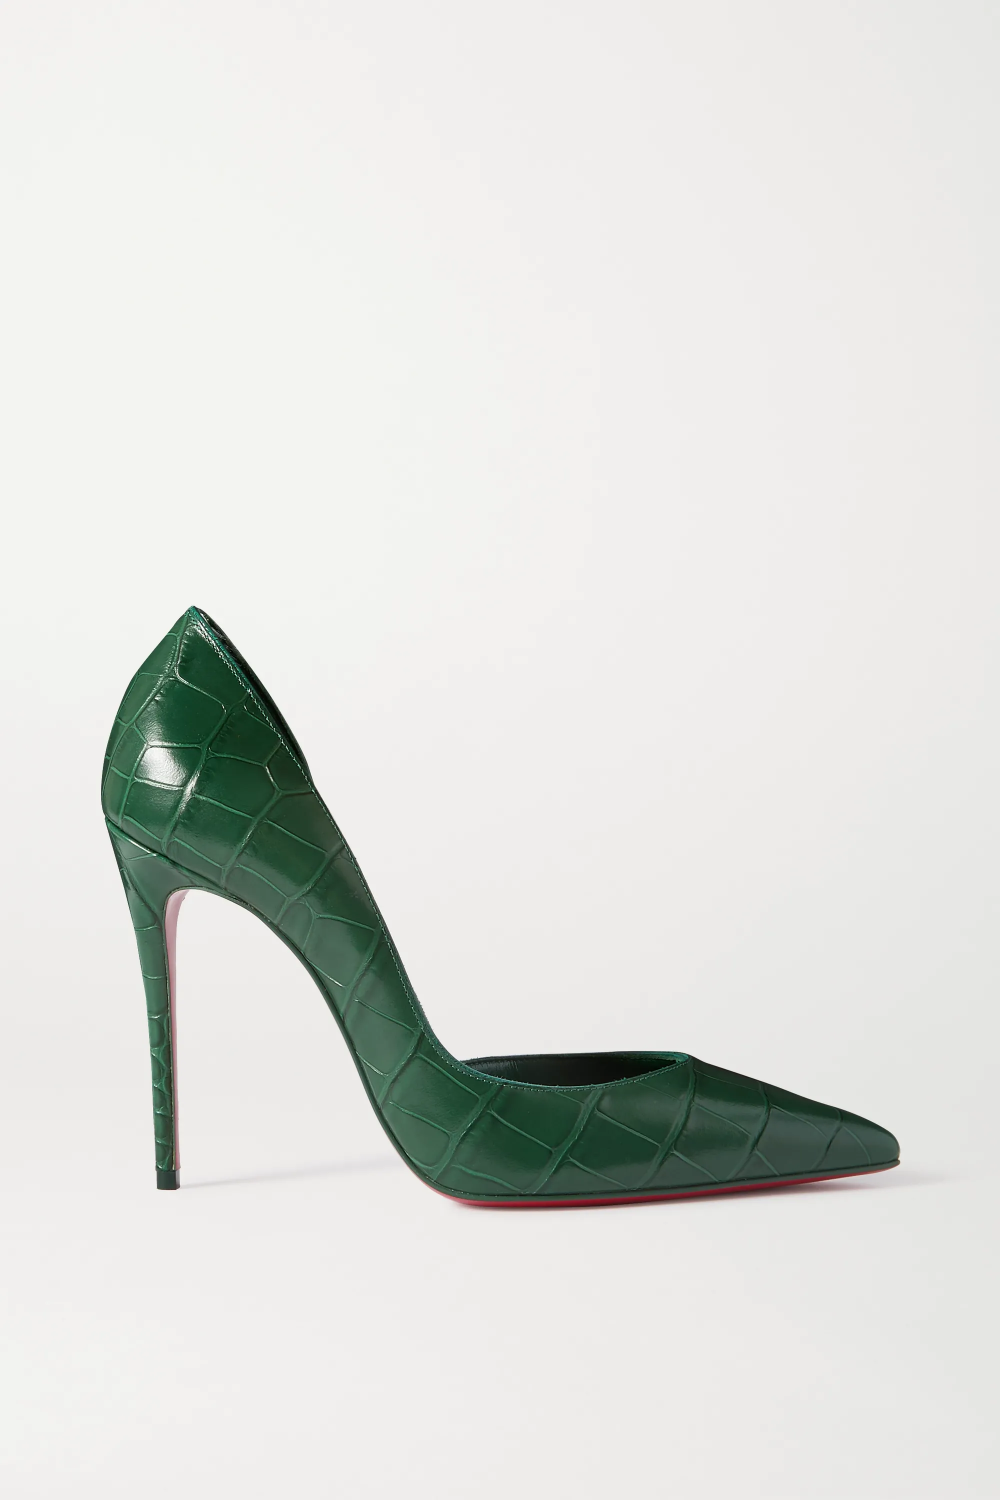 Sparkly Green Cocktail Party Leather Pumps 2020 Sequins 12 Cm Stiletto Heels Pointed Toe Pumps In 2020 Stiletto Heels Heels Green Heels